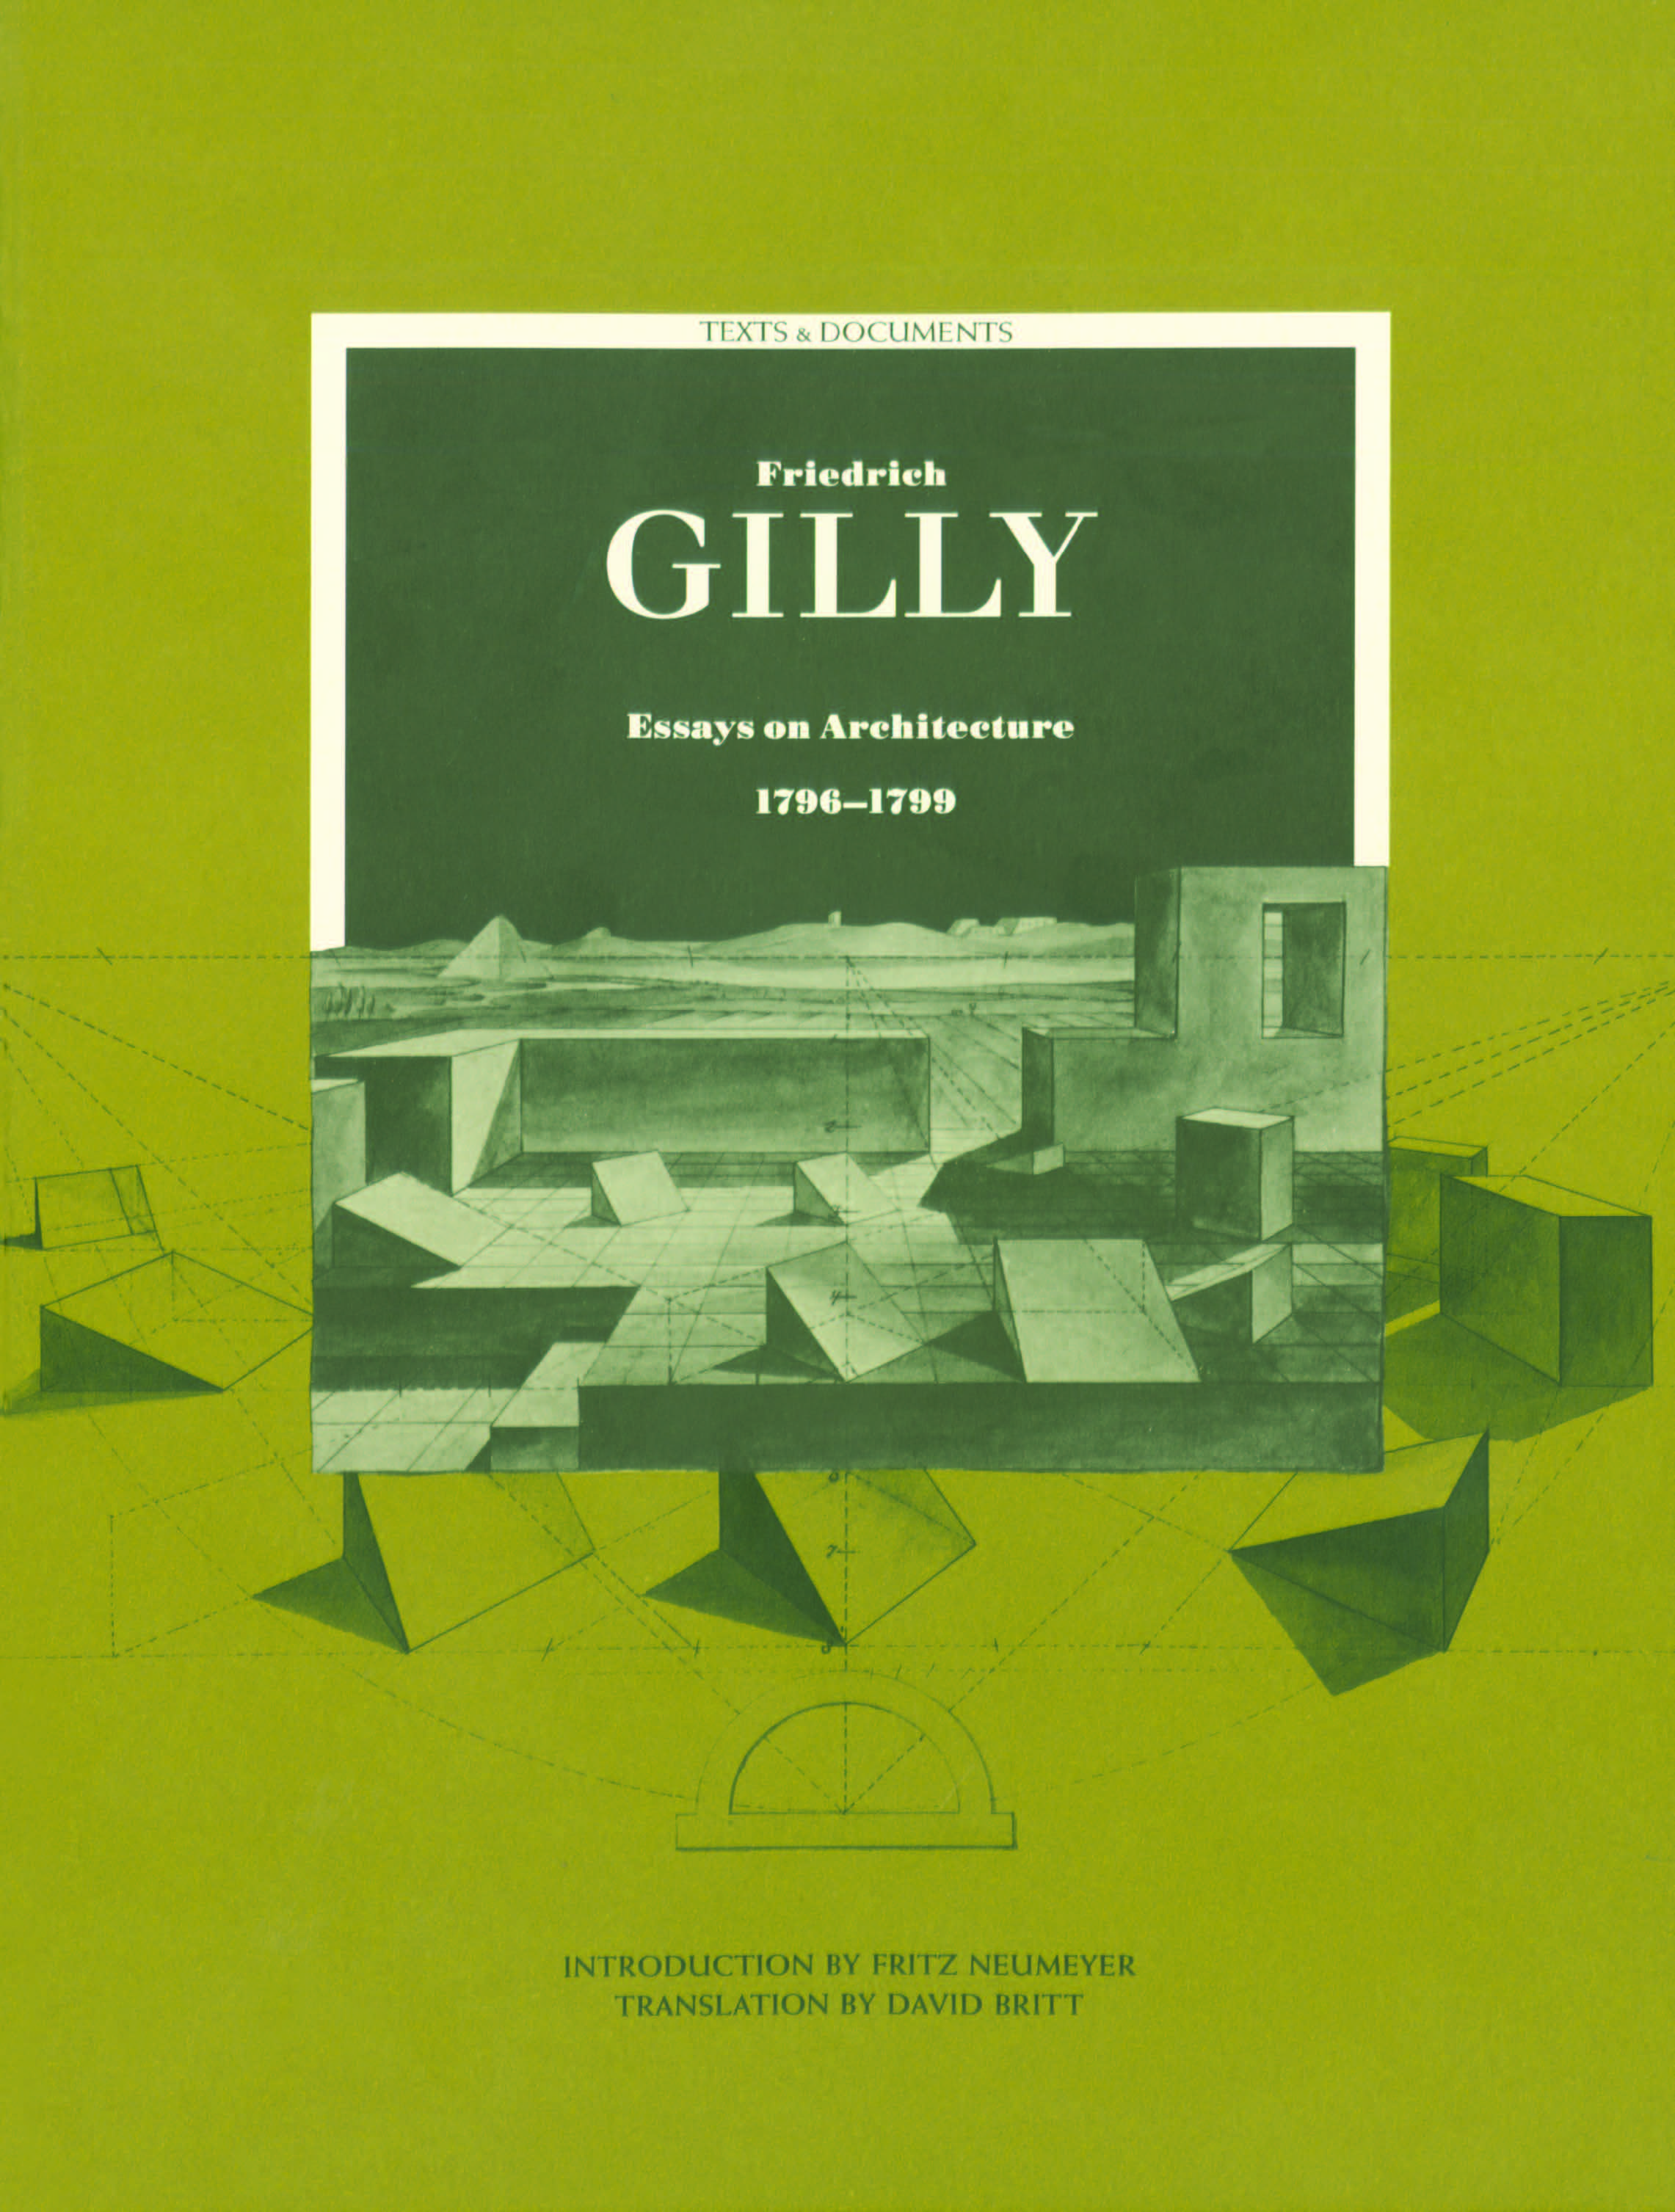 Friedrich Gilly: Essays on Architecture, 1796-1799  Introduction by Fritz Neumeyer  Translation by David Britt  1994